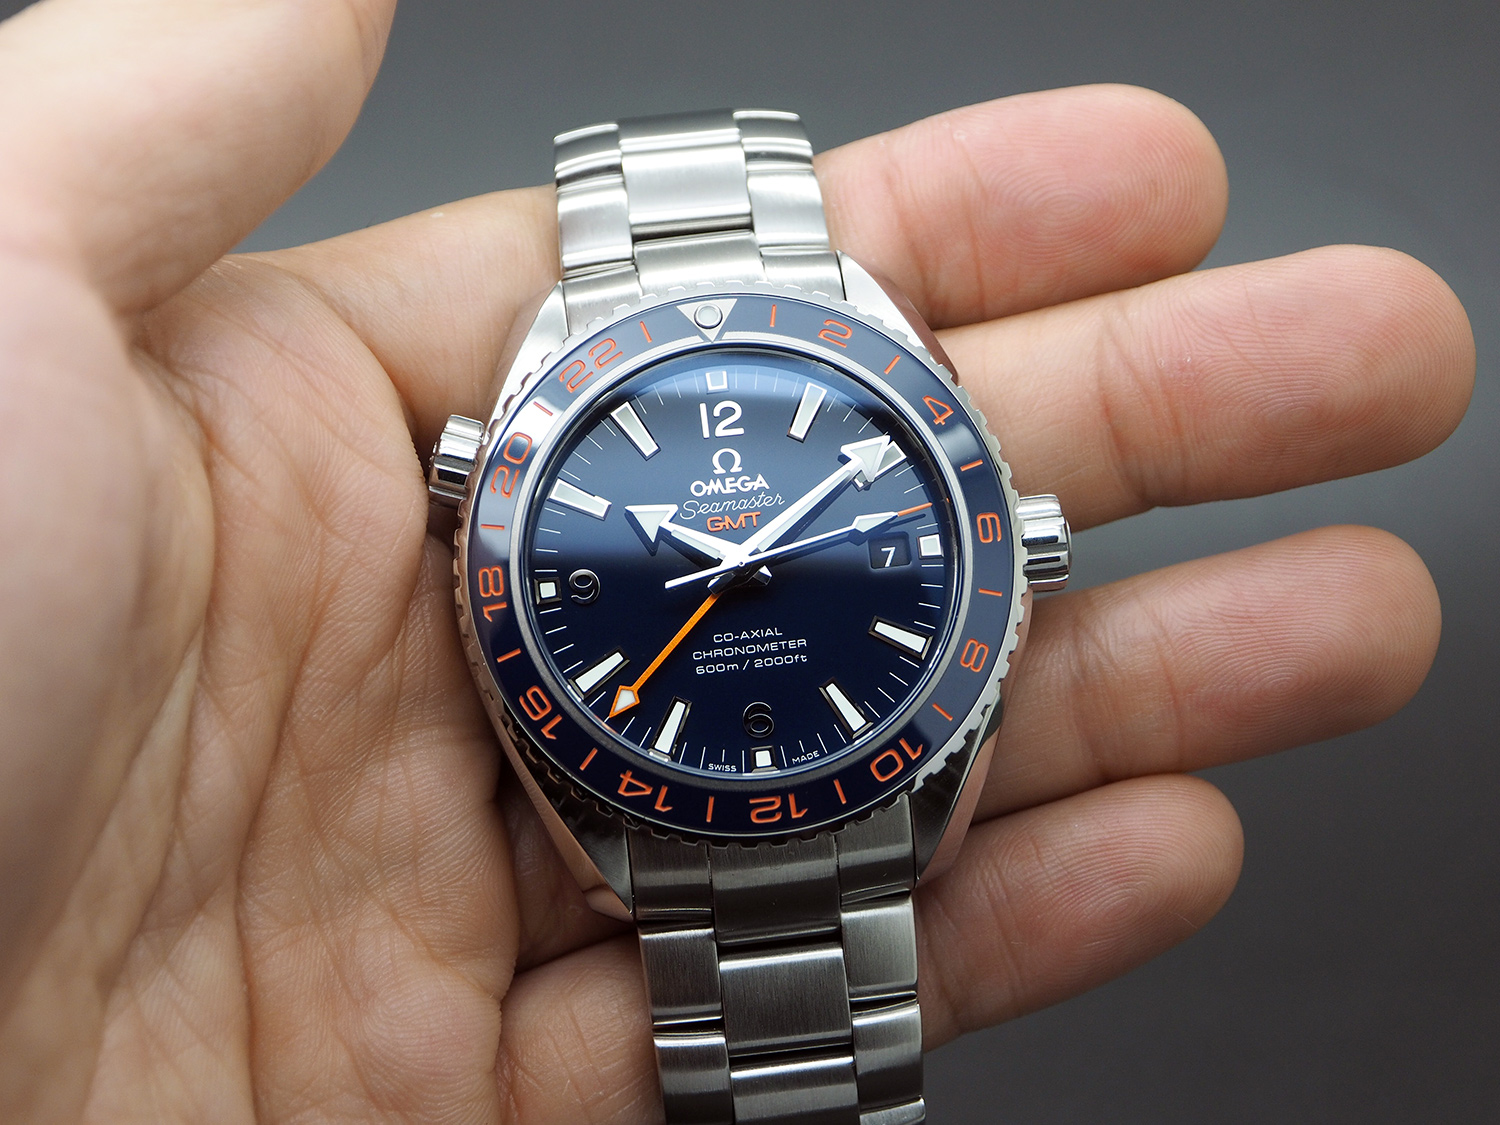 Omega Seamaster Planet Ocean 600m Gmt Goodplanet Edition